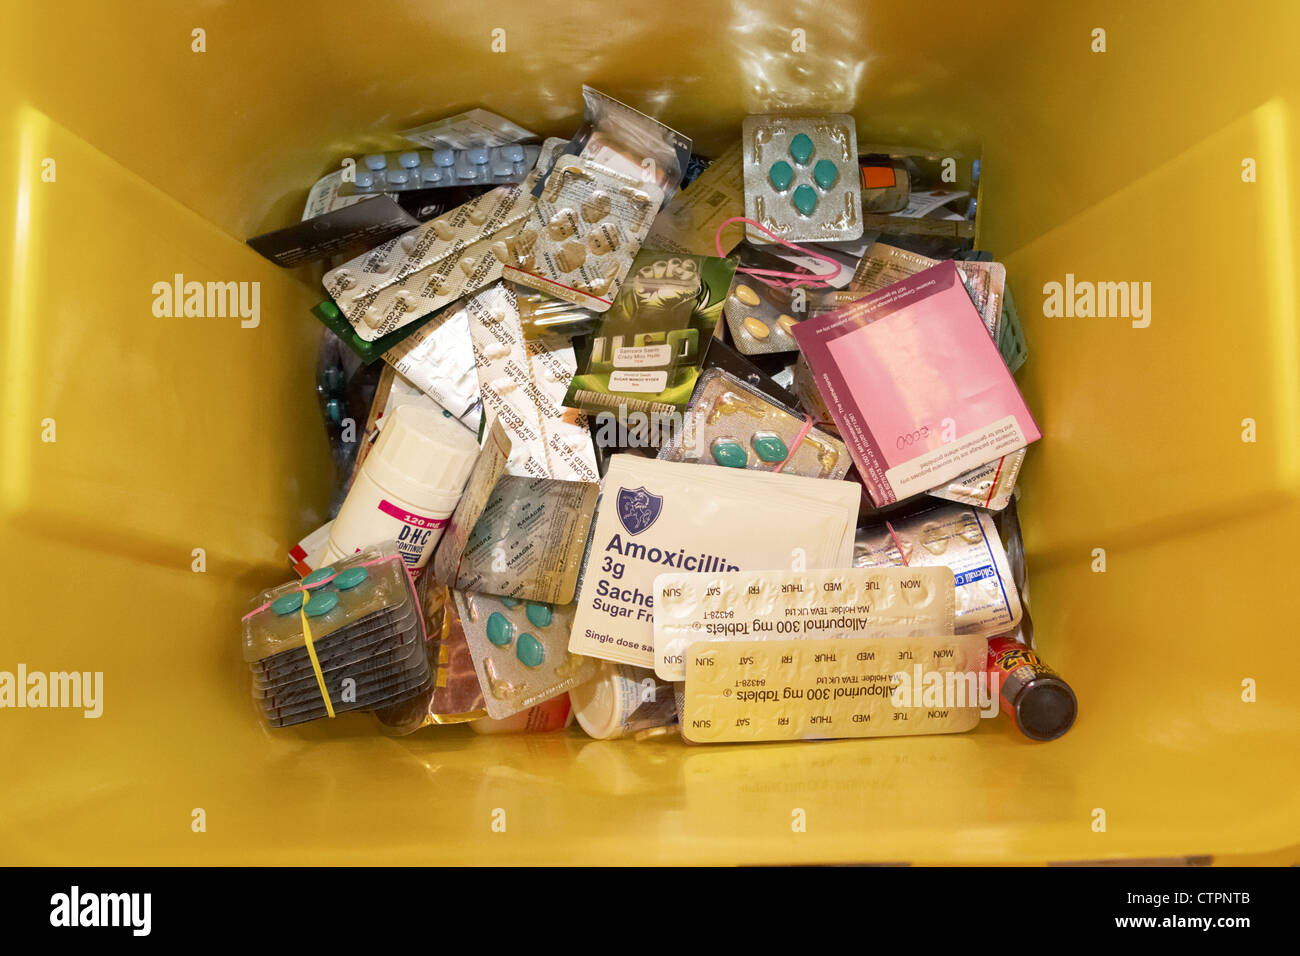 discarded tablets and drugs in a yellow container for disposal confiscated from mail post system - Stock Image